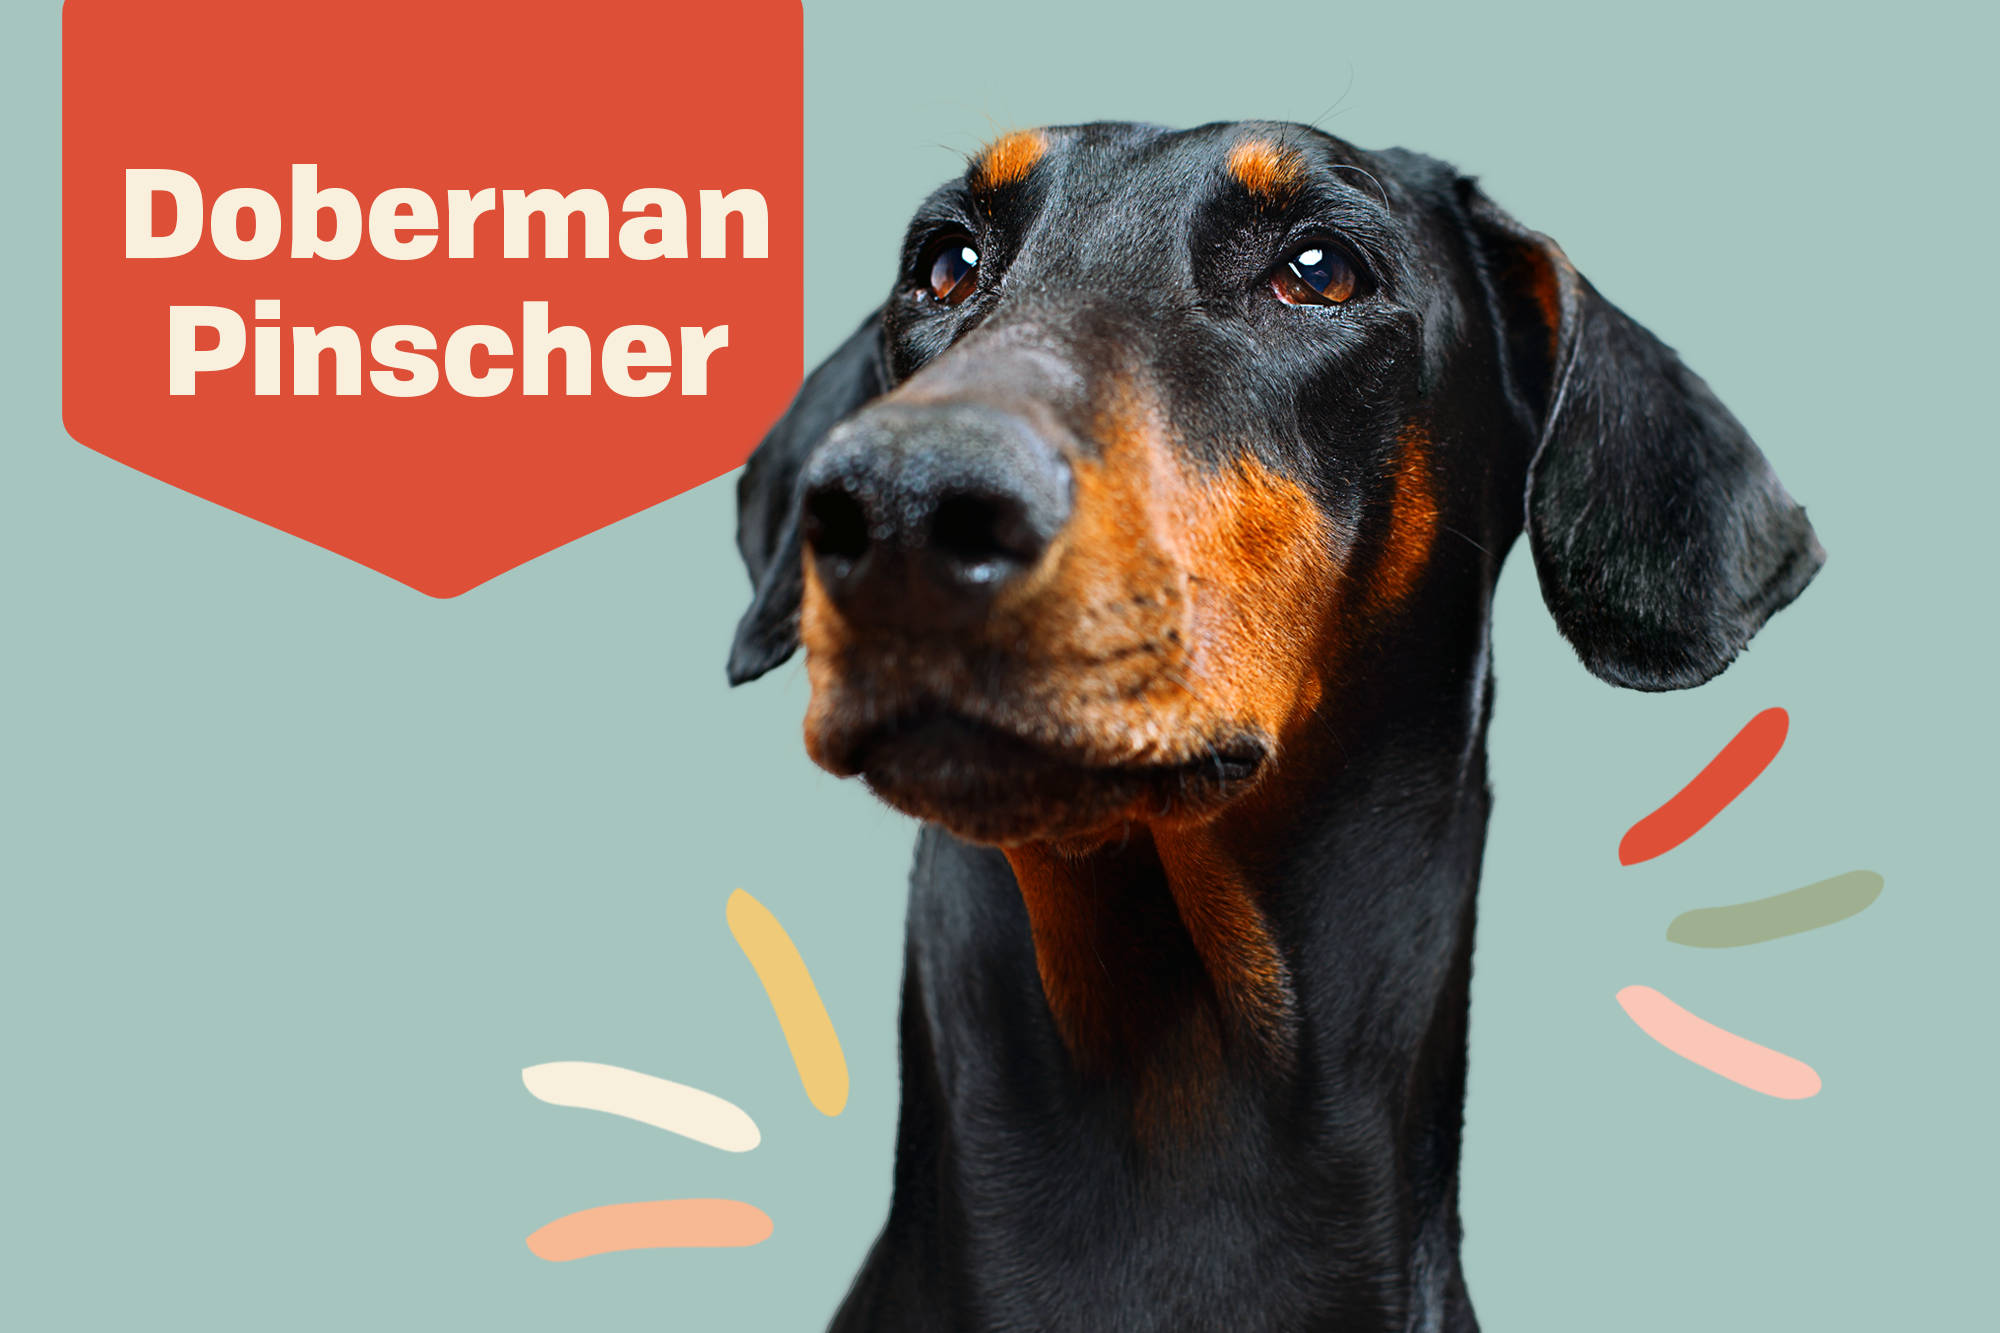 Doberman Pinscher Dog Breed Information Characteristics Daily Paws